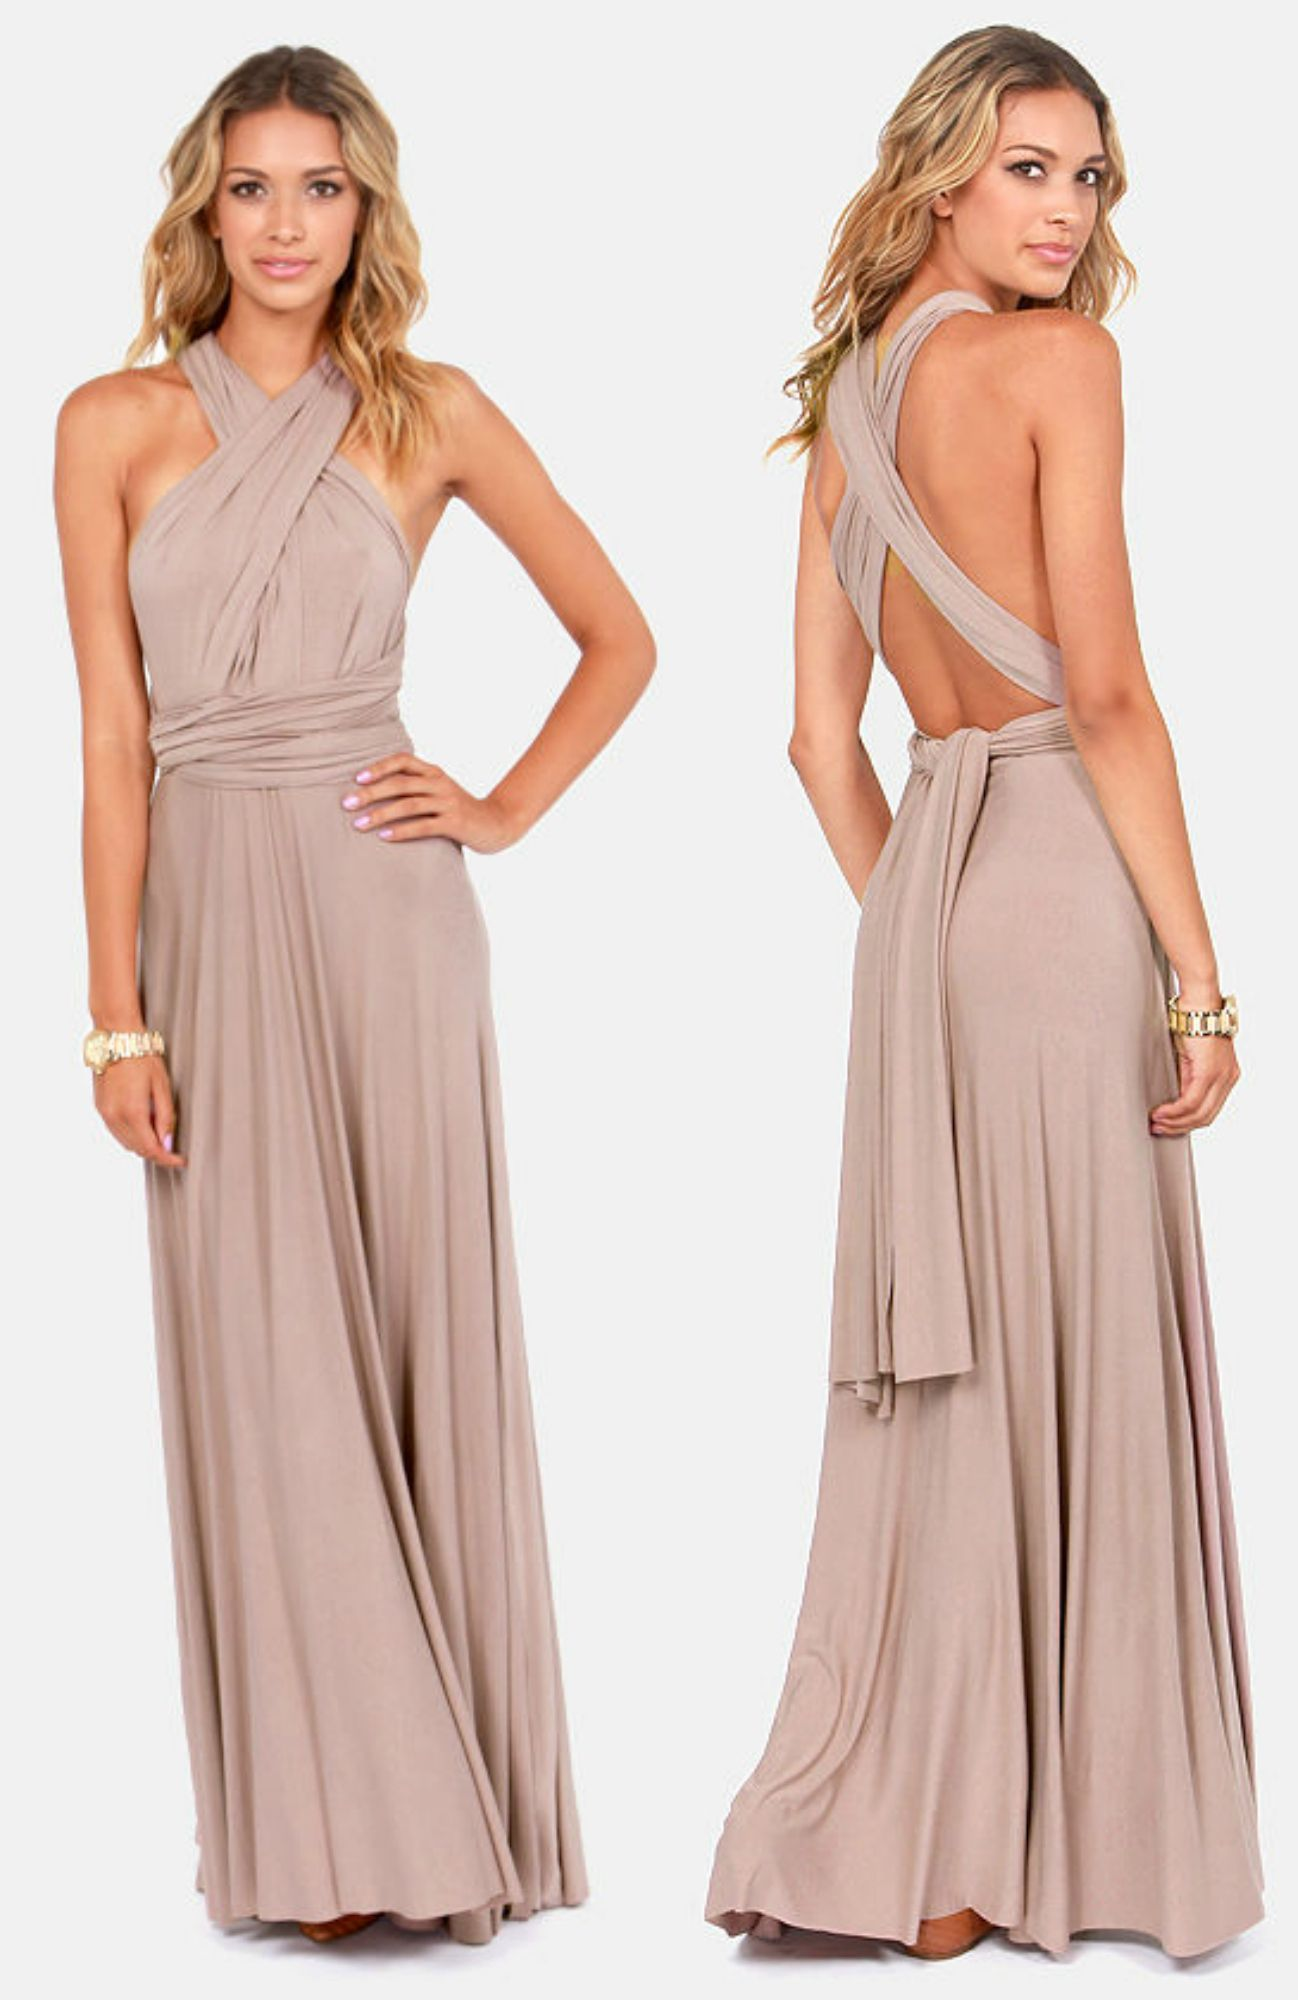 Tricks of the Trade Taupe Maxi Dress | Vestiditos, Vestidos de ...